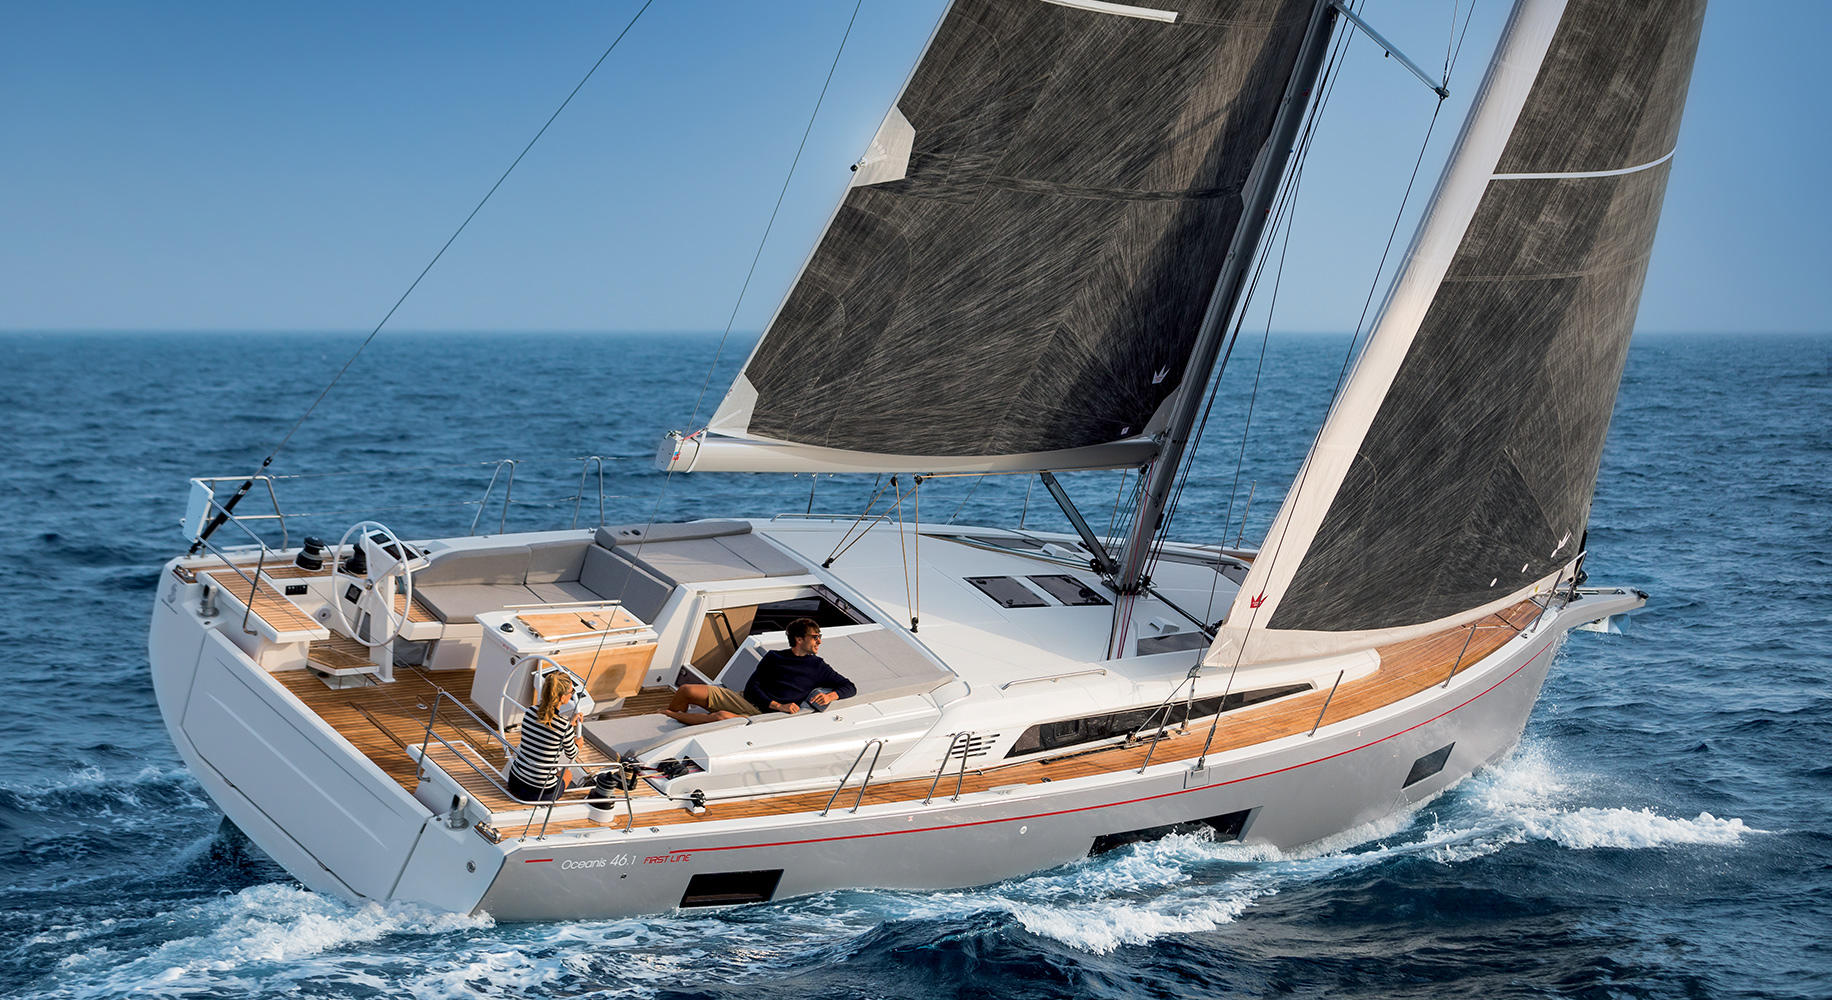 Oceanis 46.1 Prestige (4Cab) - Sailing Yacht for Charter in Greece